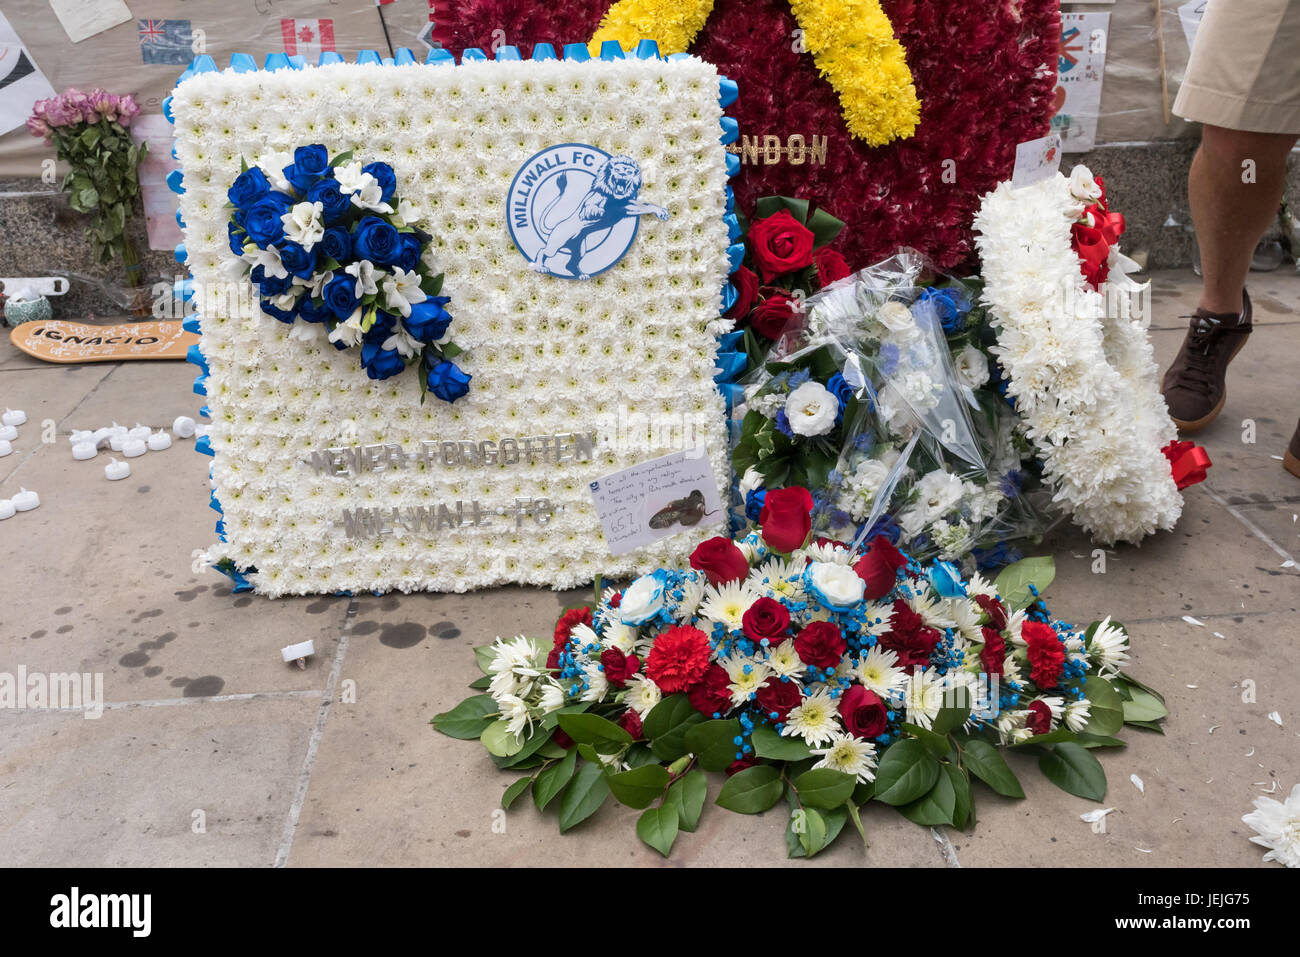 June 24 2017 london uk london uk 24th september 2017 wreaths and flowers from fans of millwall west ham portsmouth and arsenal on london bridge after the march by izmirmasajfo Images